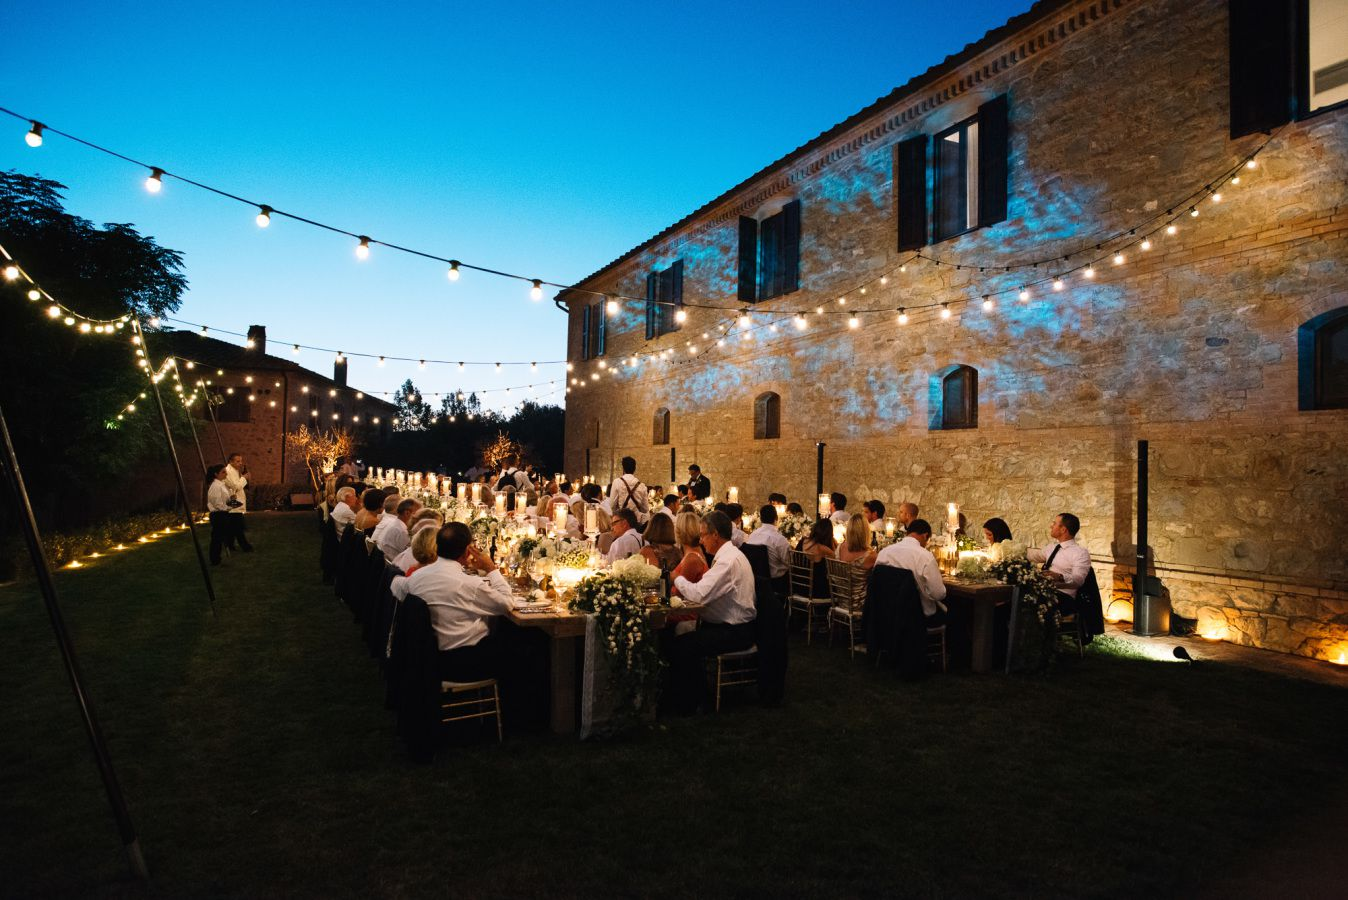 5646159c0df23x900 Destination Wedding Inspirador: Toscana